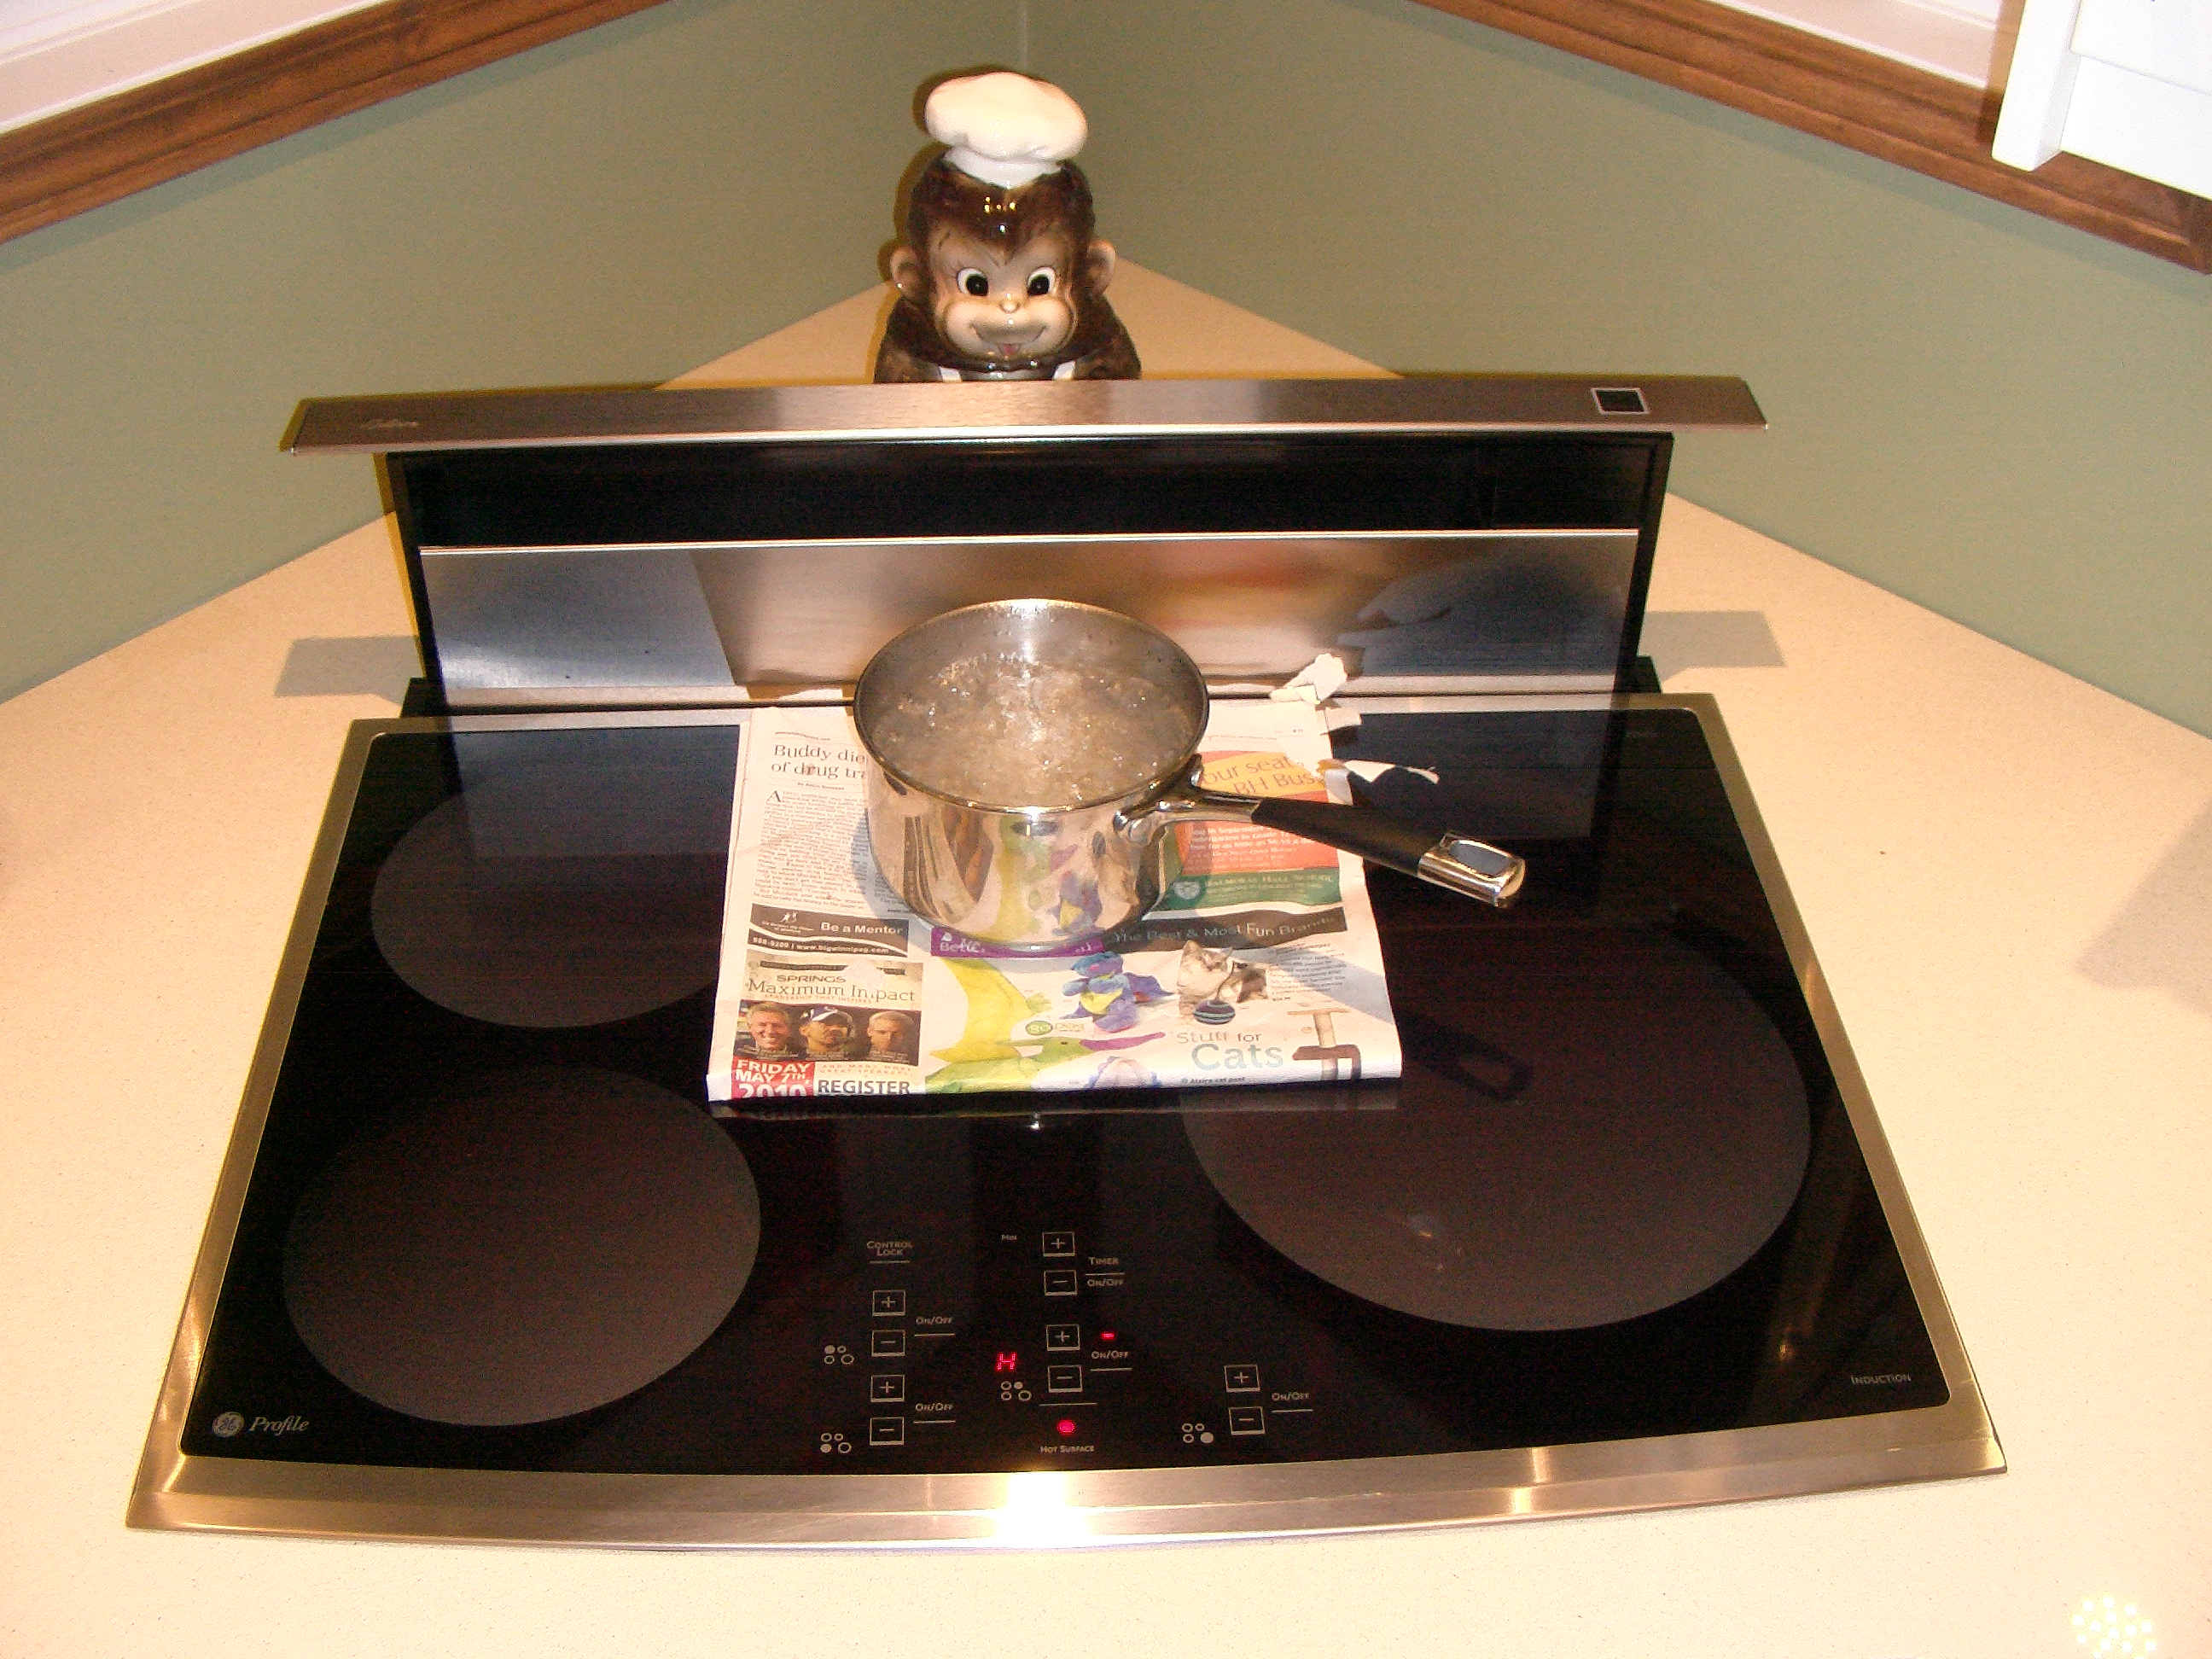 Ordinary Cooking On Induction Cooktop Part - 10: File:Induction Cooktop Rolling Boil.jpg